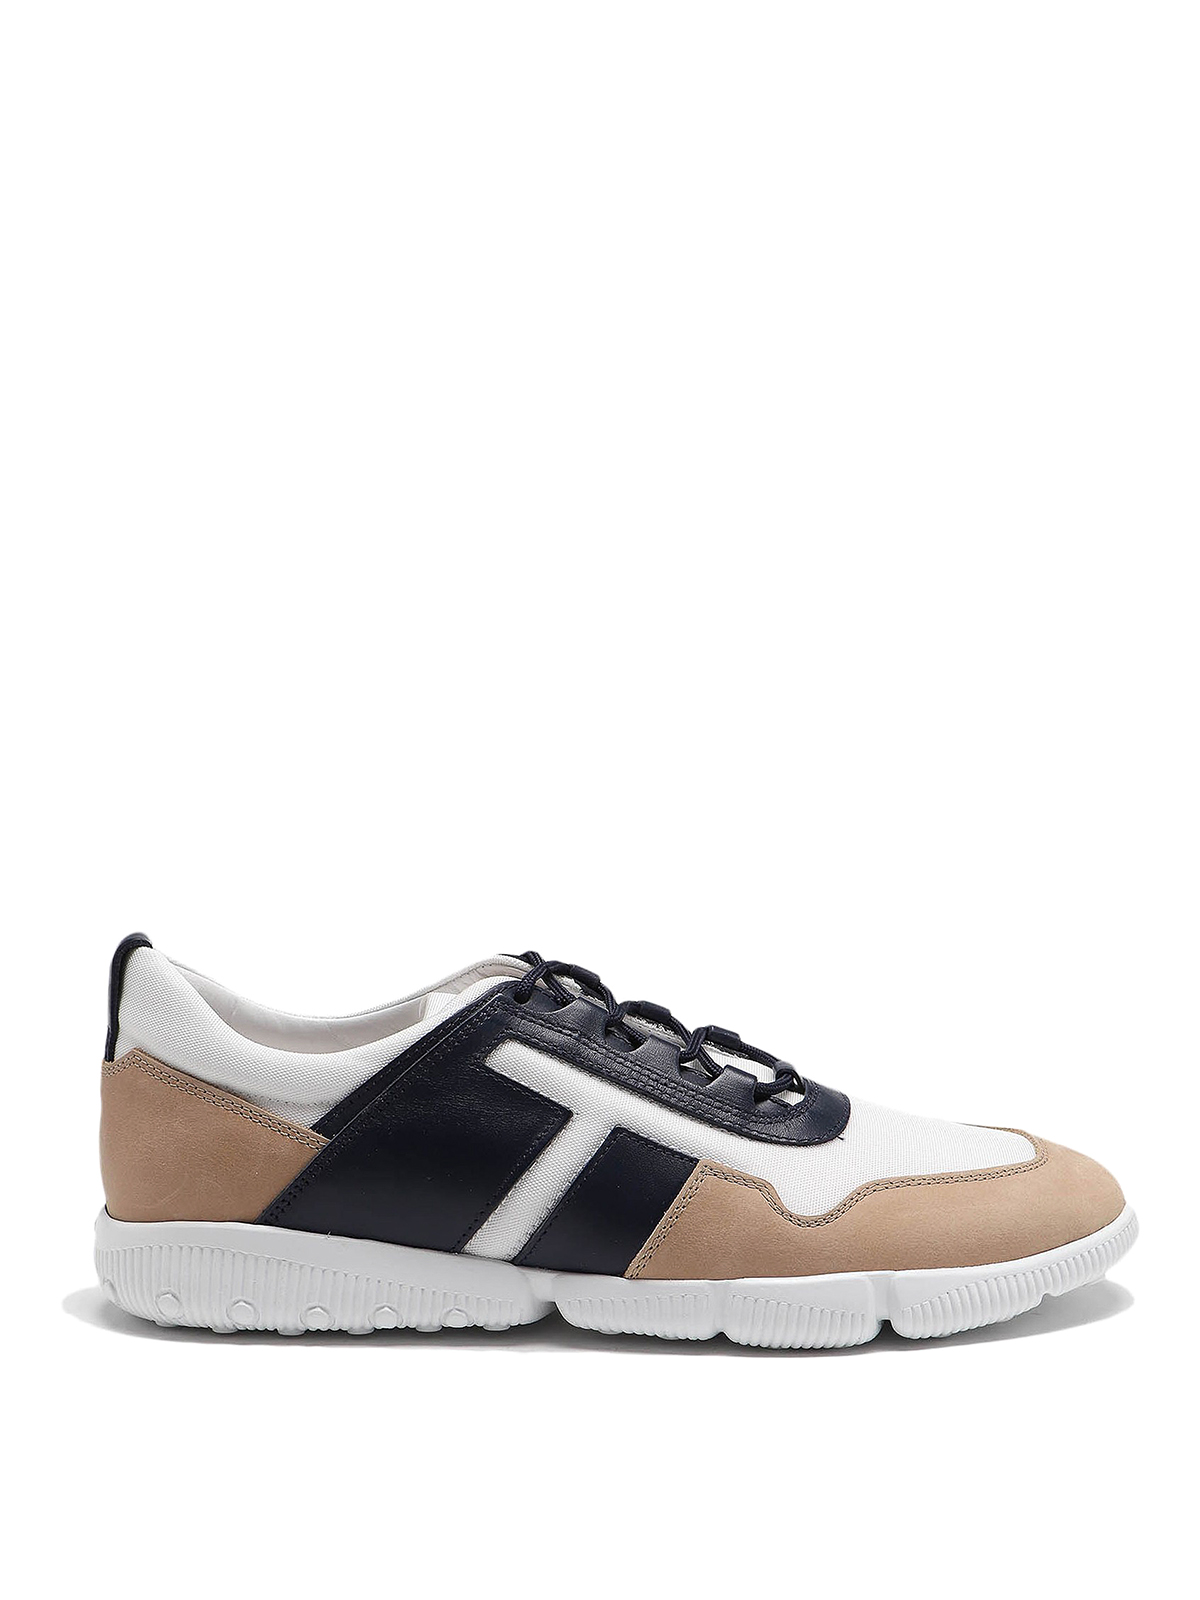 Tod's Leathers ALL COMPETITION SNEAKERS BEIGE AND BLUE